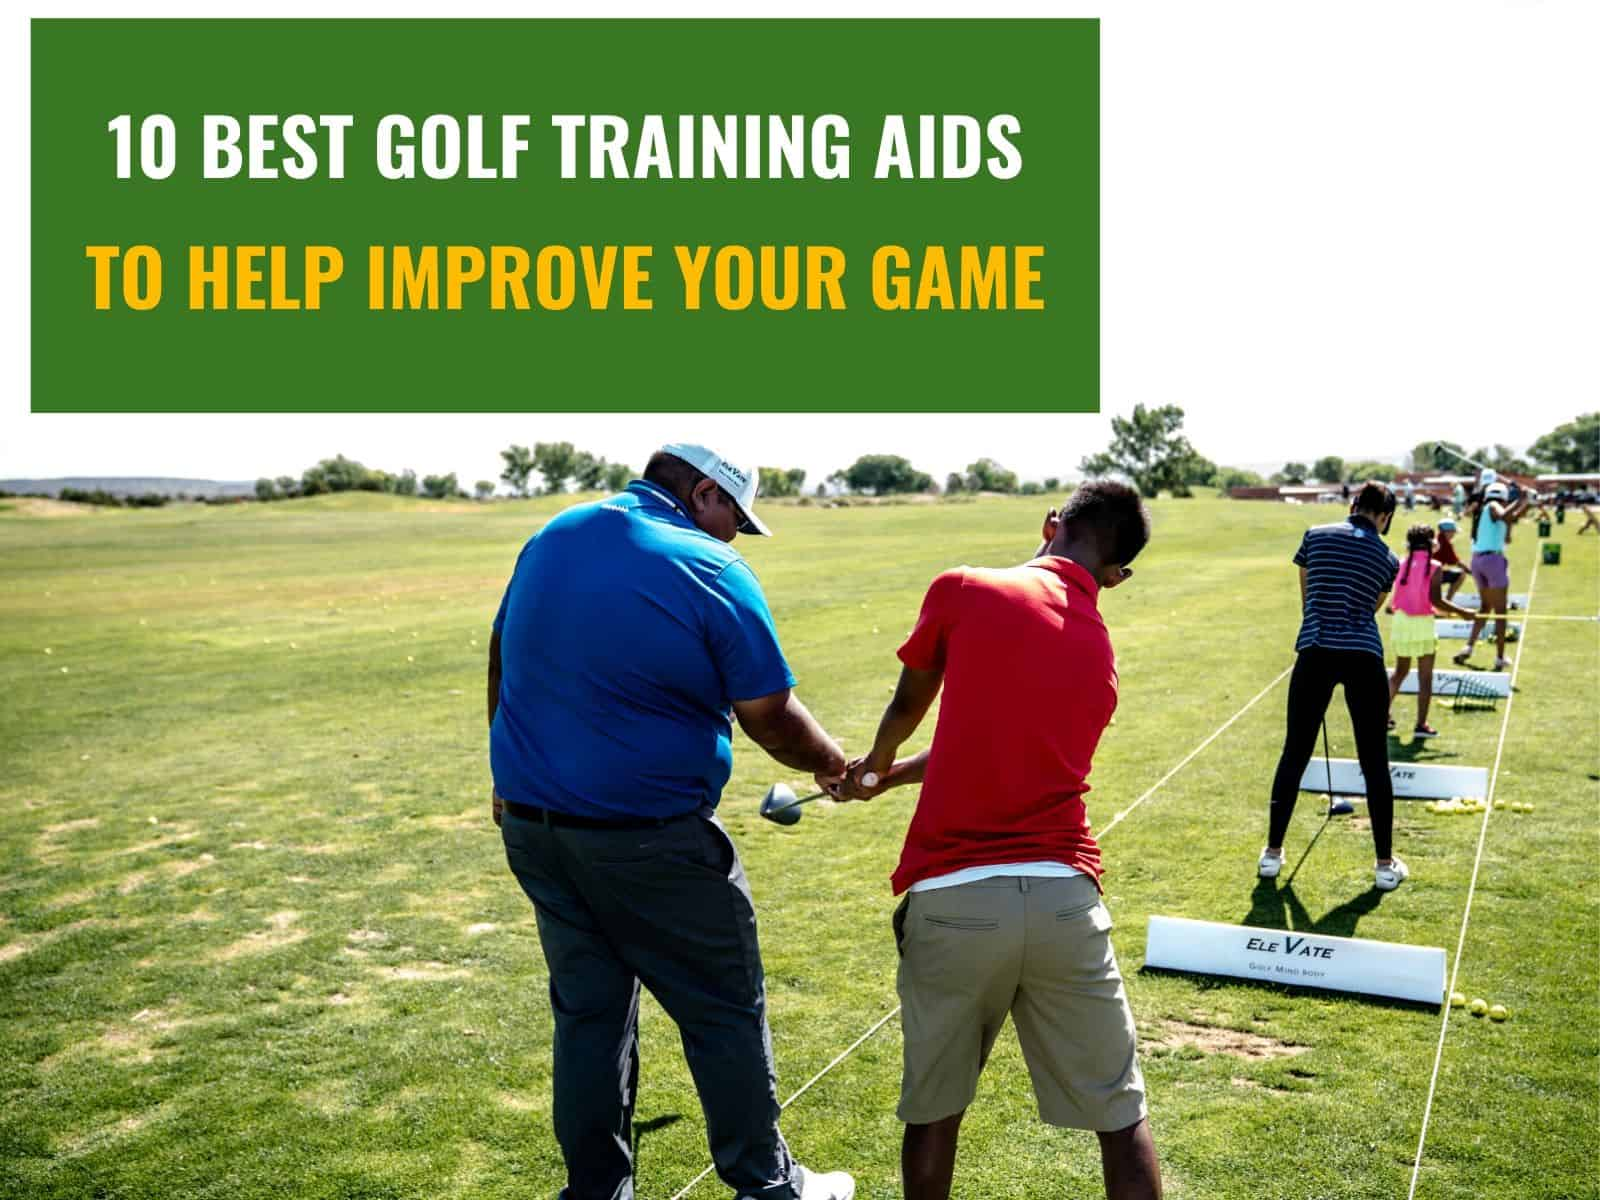 Golfers training on golf courseusing best golf training aids